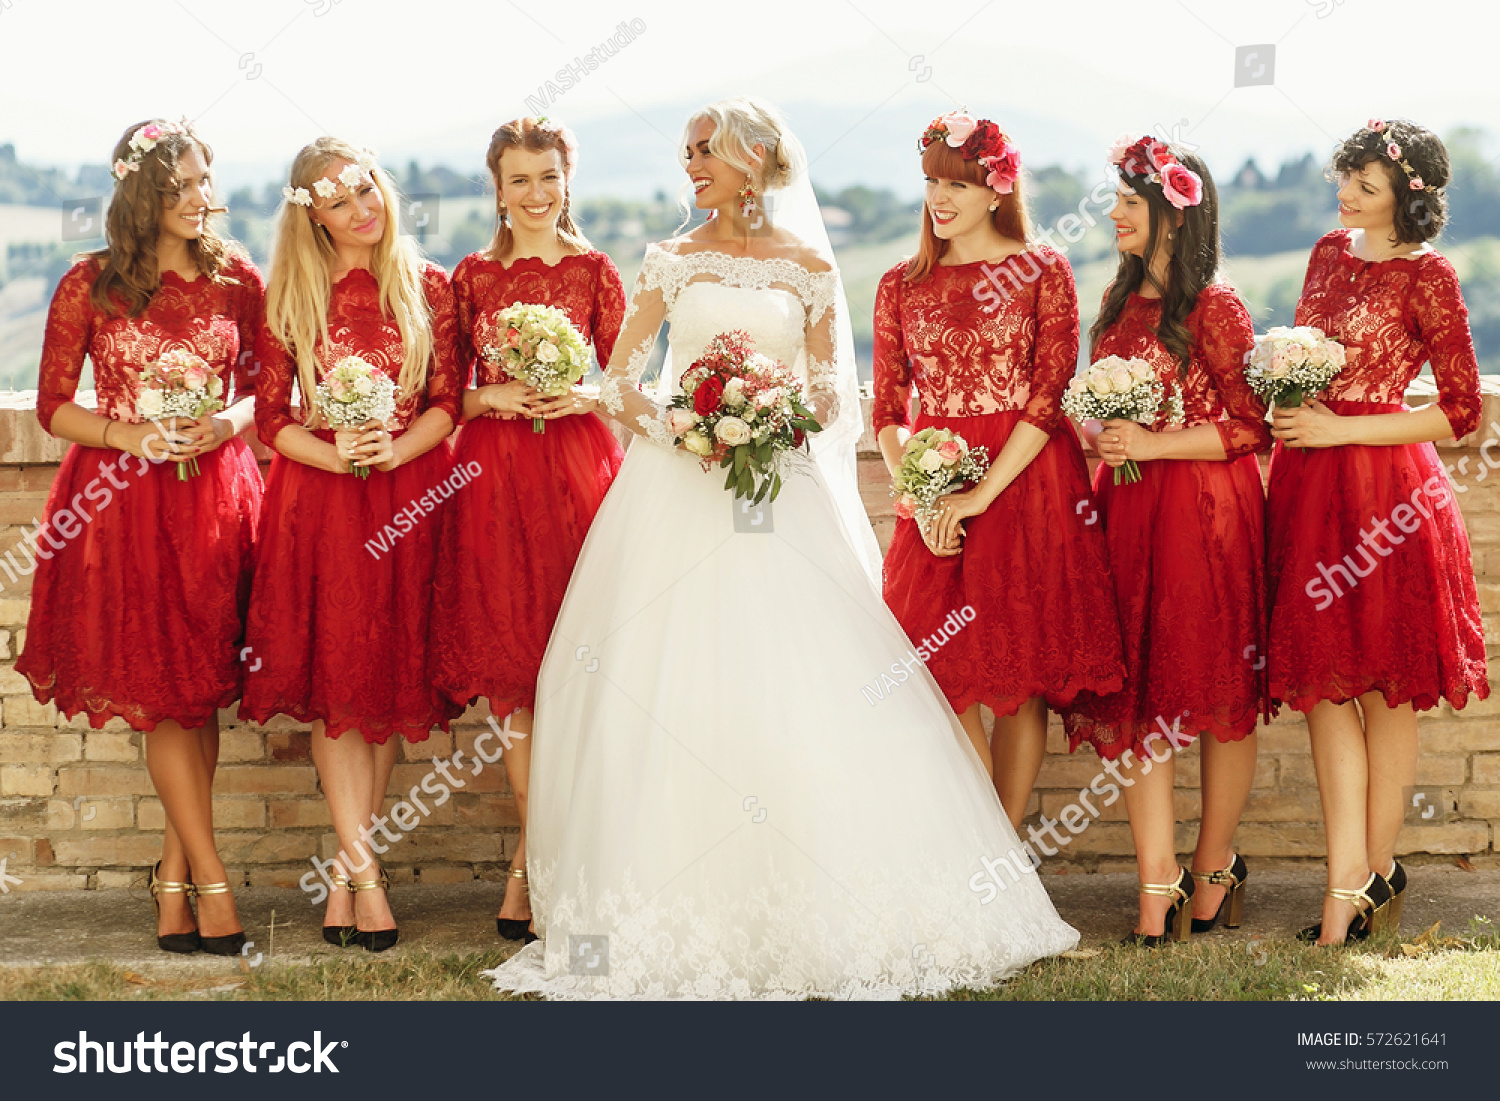 Stunning blonde bride bridesmaids short red stock photo 572621641 stunning blonde bride and bridesmaids in short red dresses pose before beautiful landscape ombrellifo Choice Image